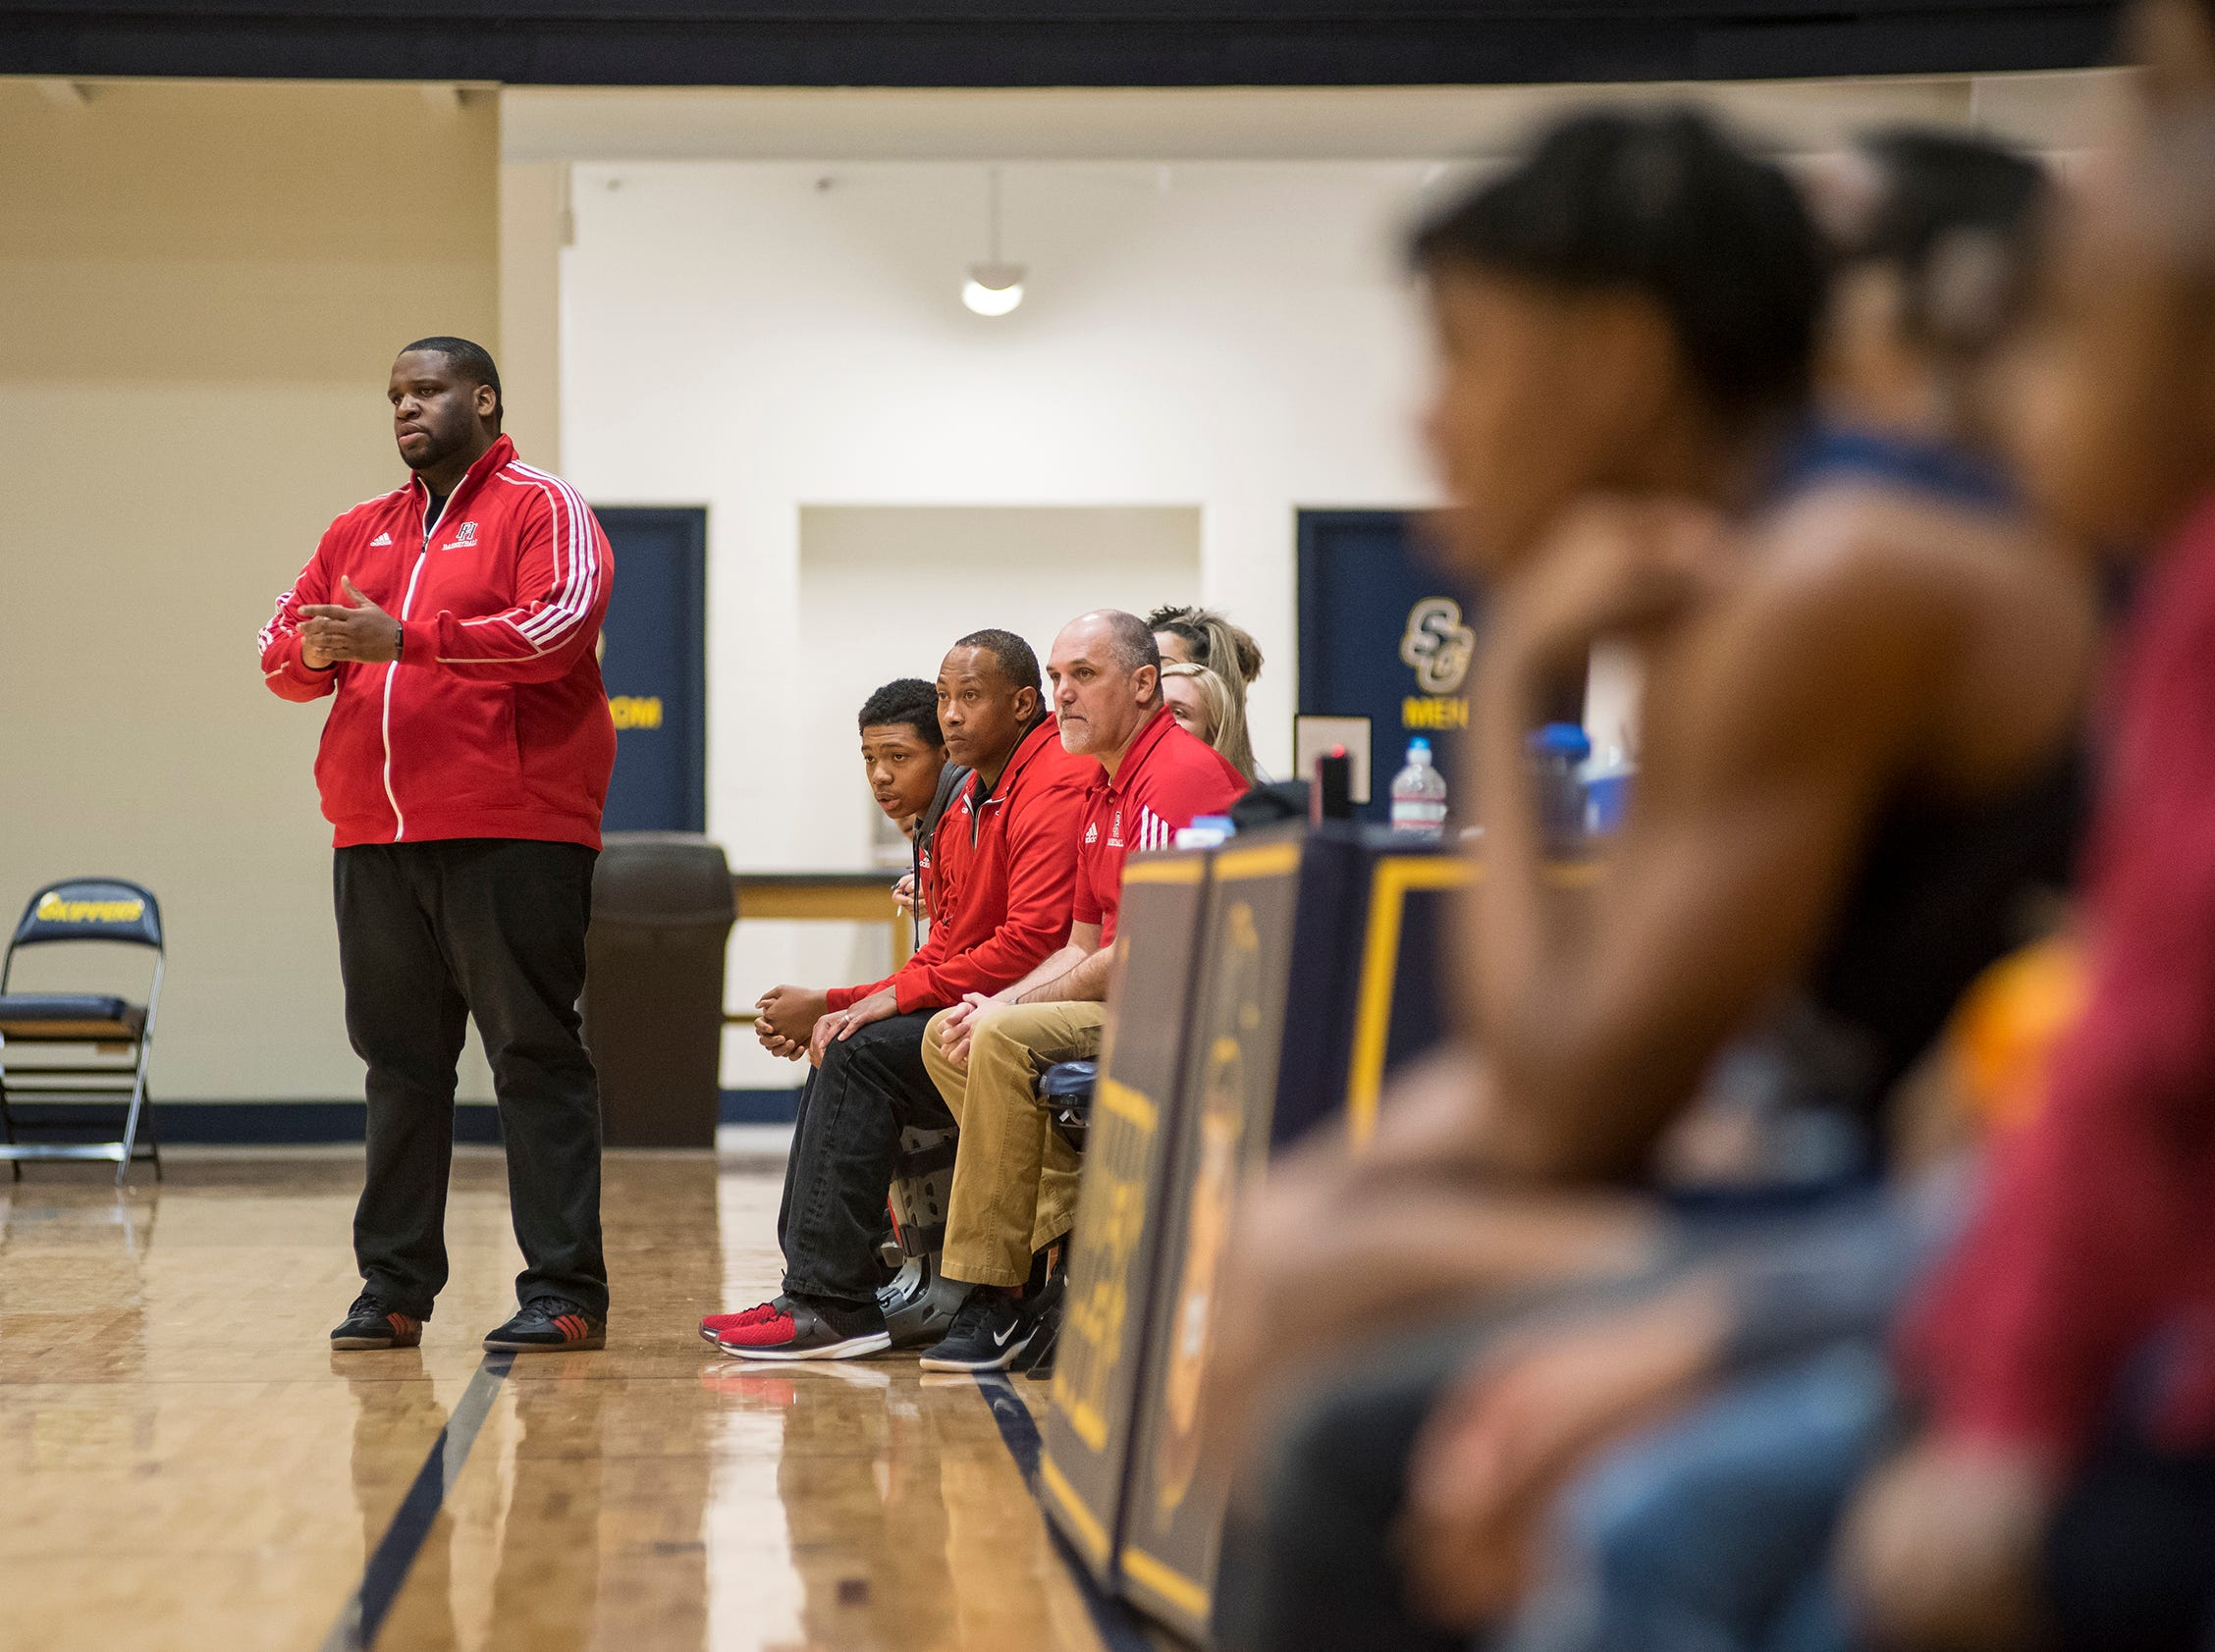 Port Huron High School head coach marion Stewart watches the  SC4 Holiday Basketball Showcase game against Waterford Mott High School from the sidelines Saturday, Dec. 29, 2018 at the SC4 Fieldhouse.